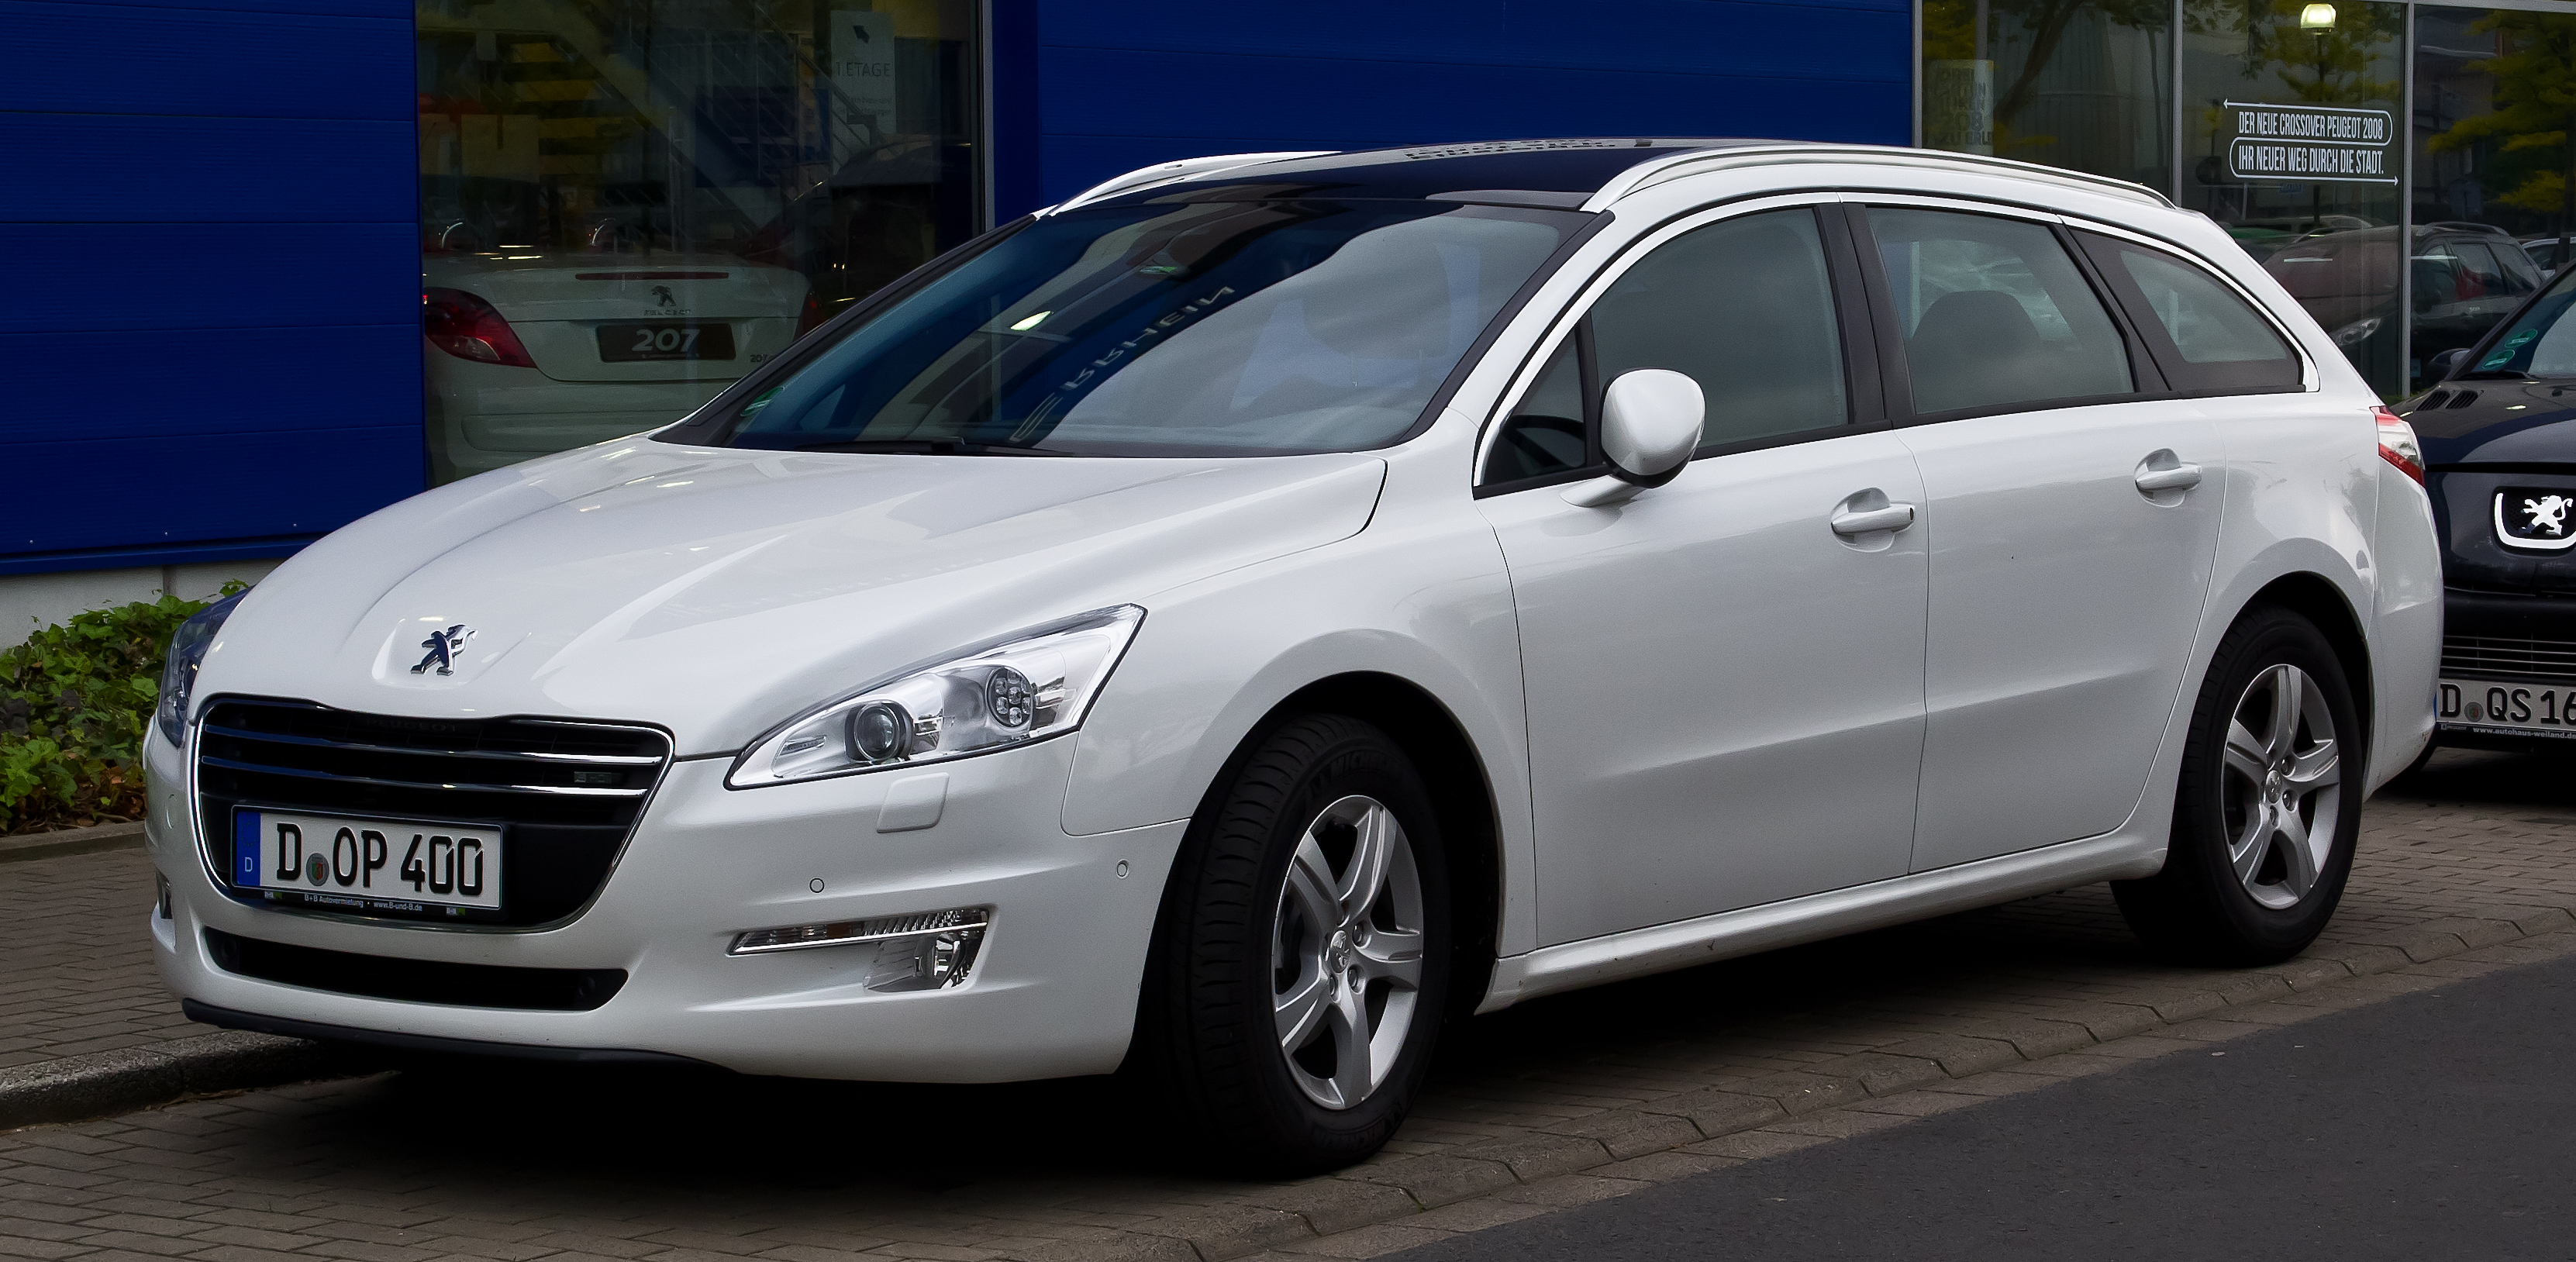 Pictures of peugeot 307 station wagon 2012 #14